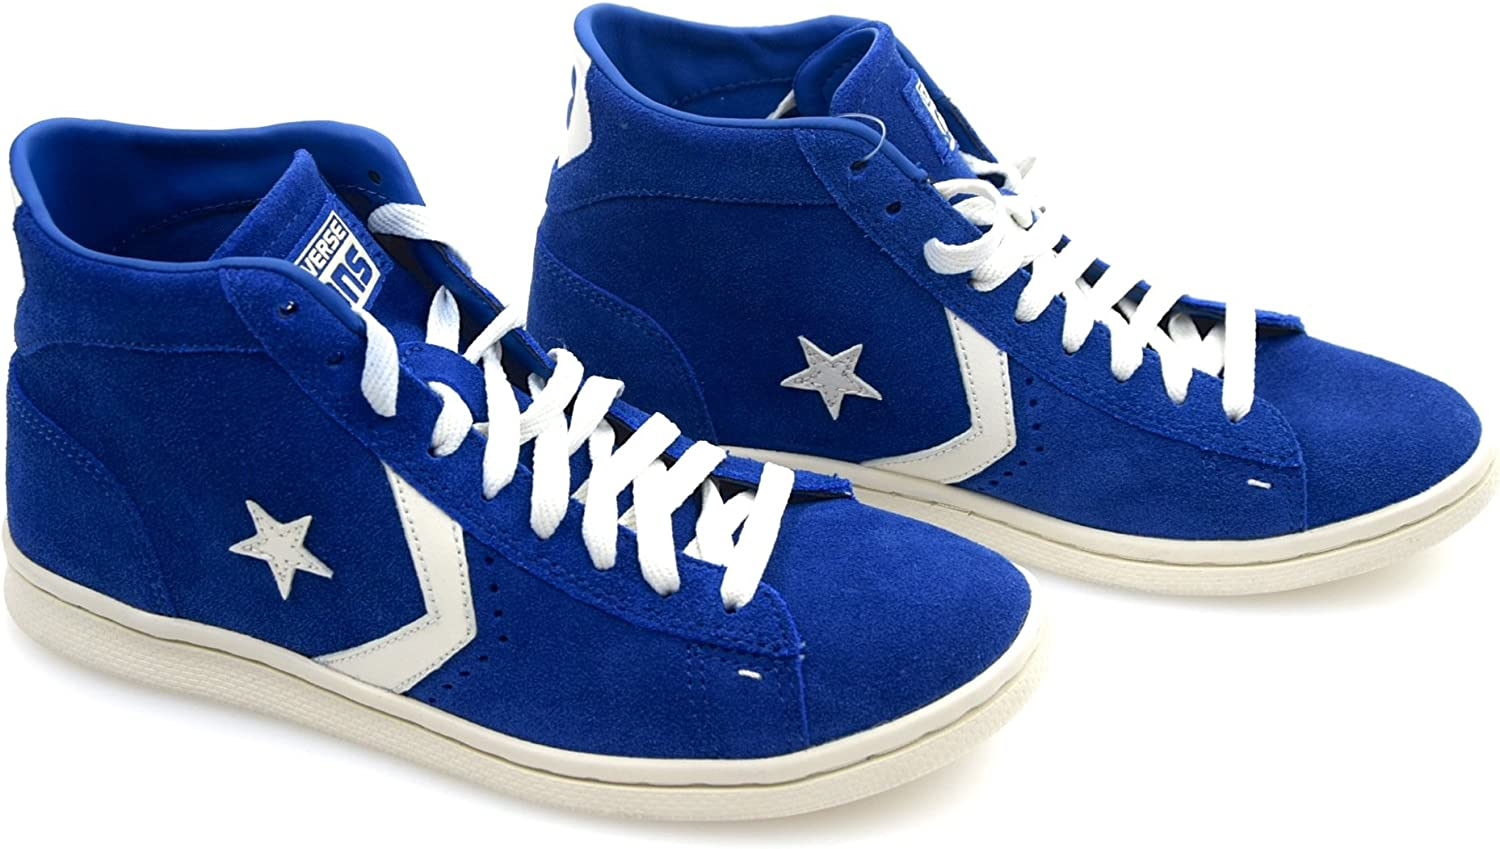 Converse Man Woman Unisex Sneaker shoes bluee Royal Suede Code 131106C